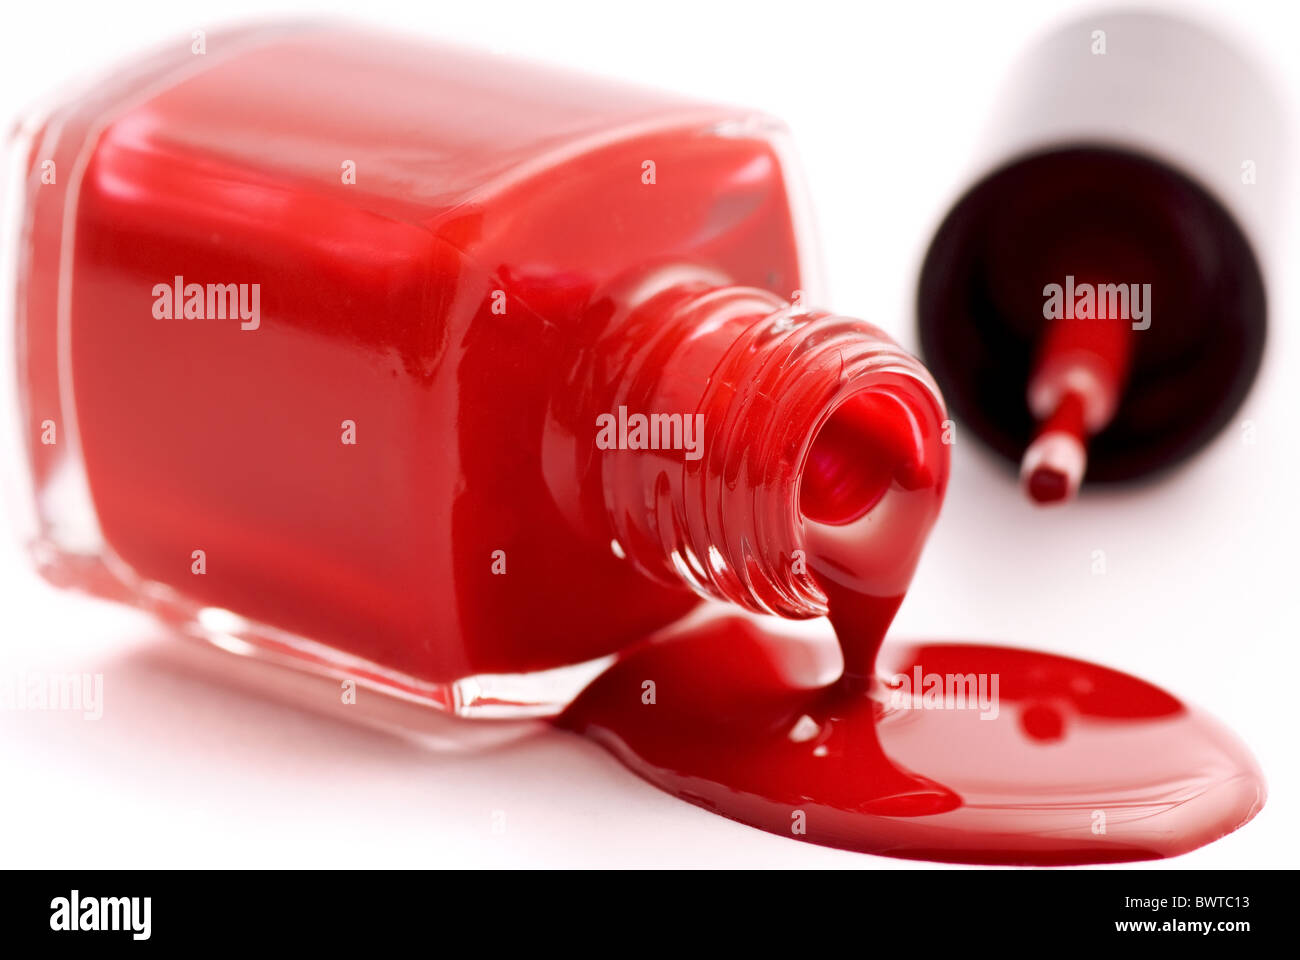 Open Flask with dropping nail polish as closeup on white background - Stock Image